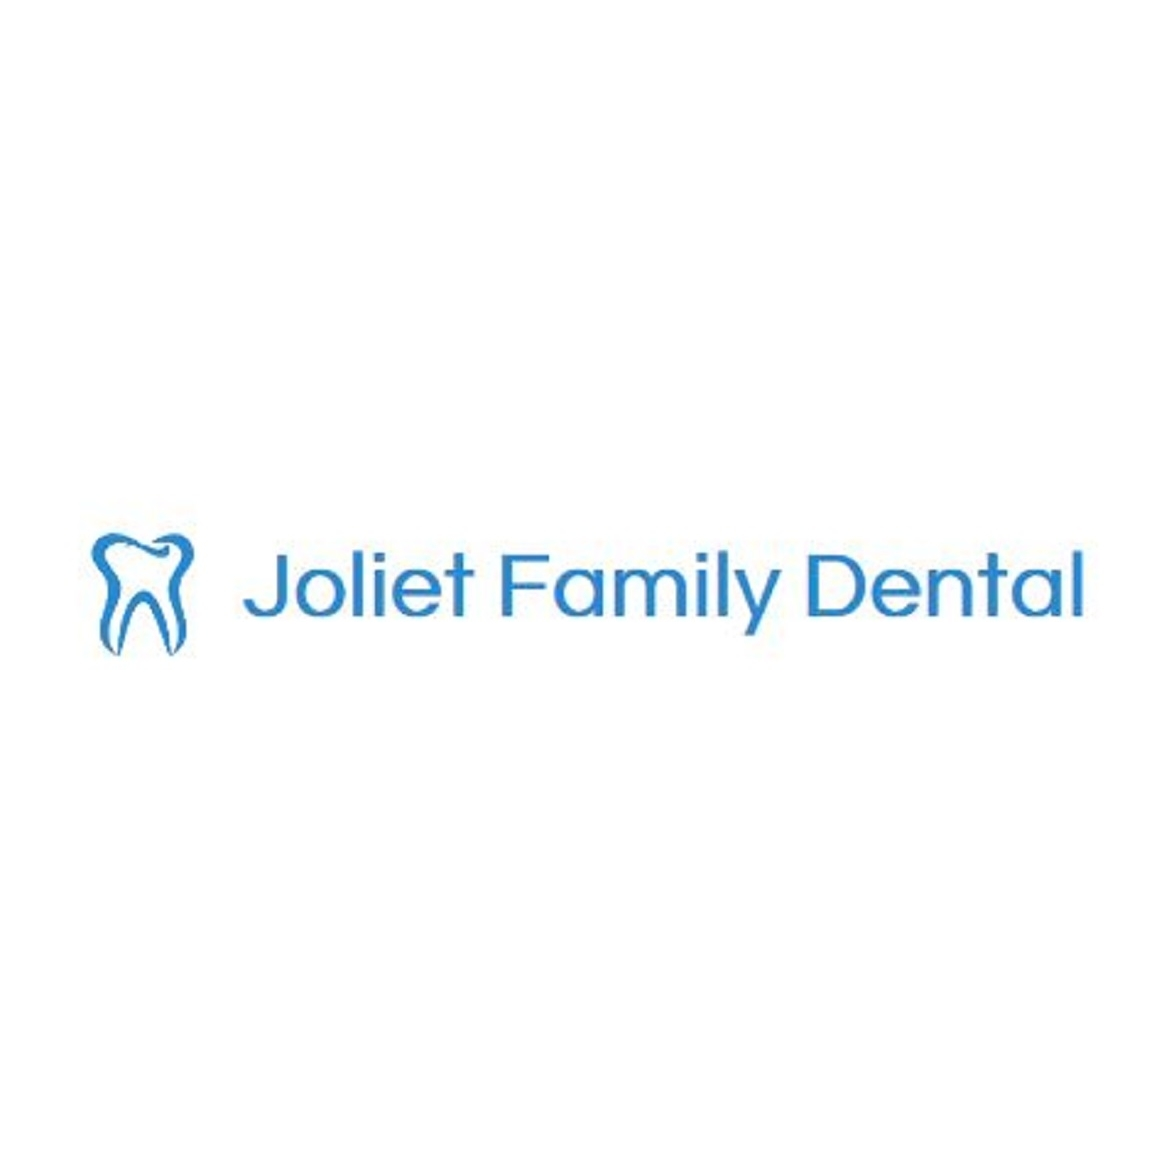 Joliet Family Dental